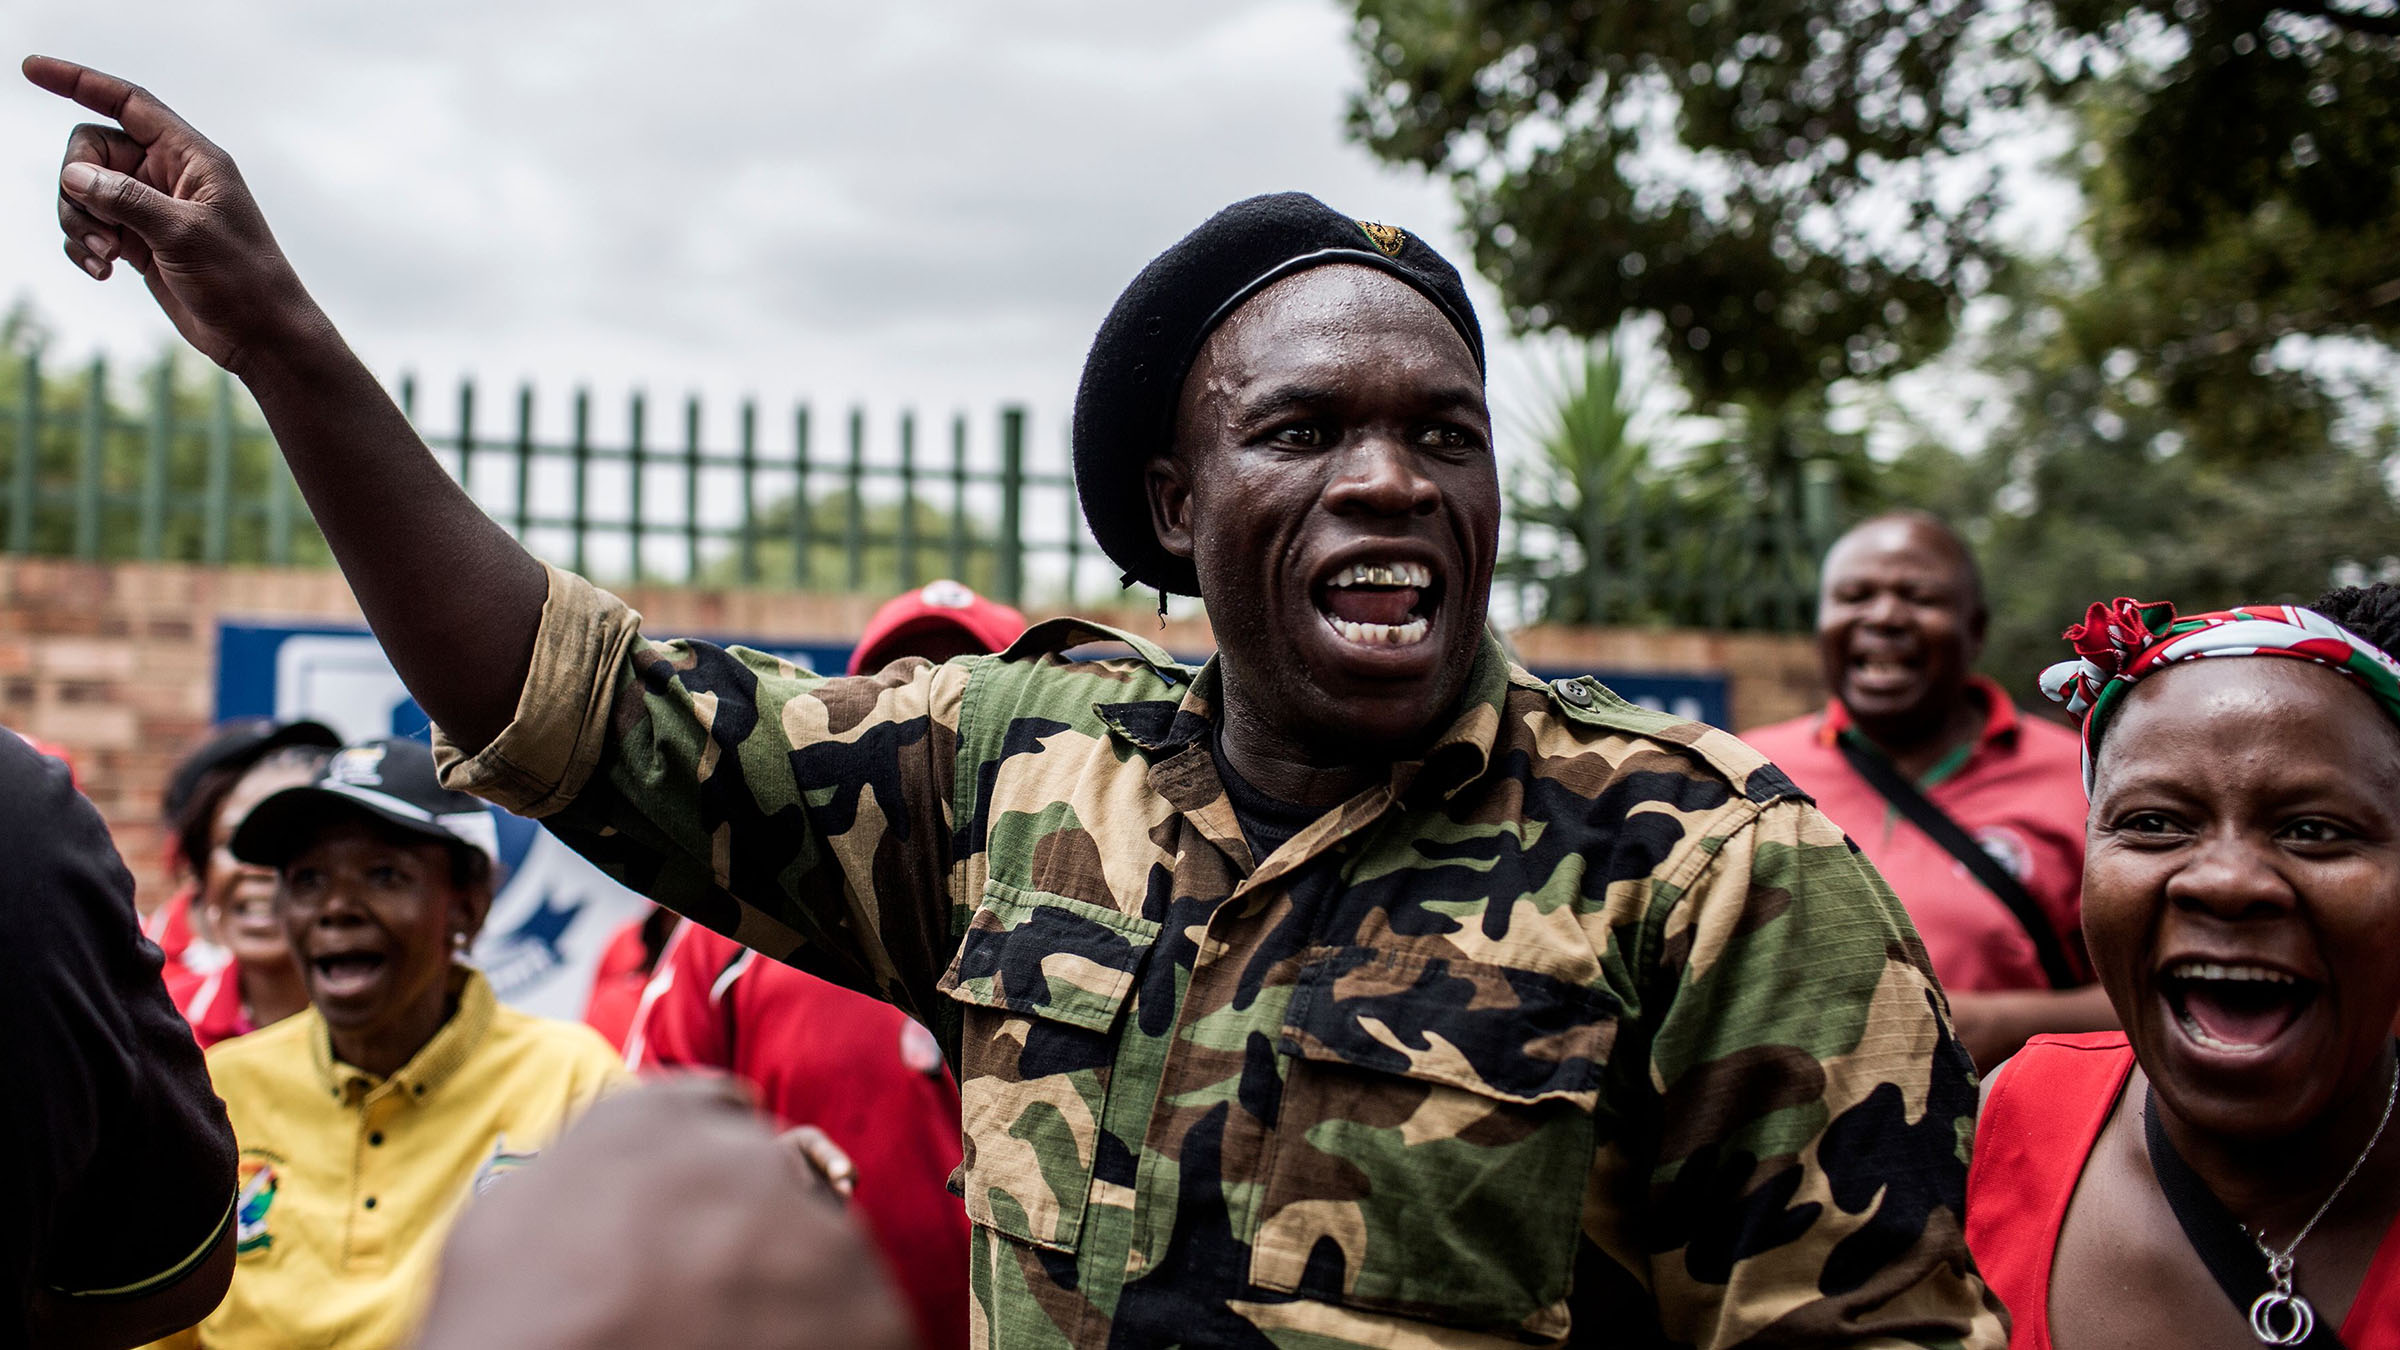 south africa on verge of civil war thetrumpet com